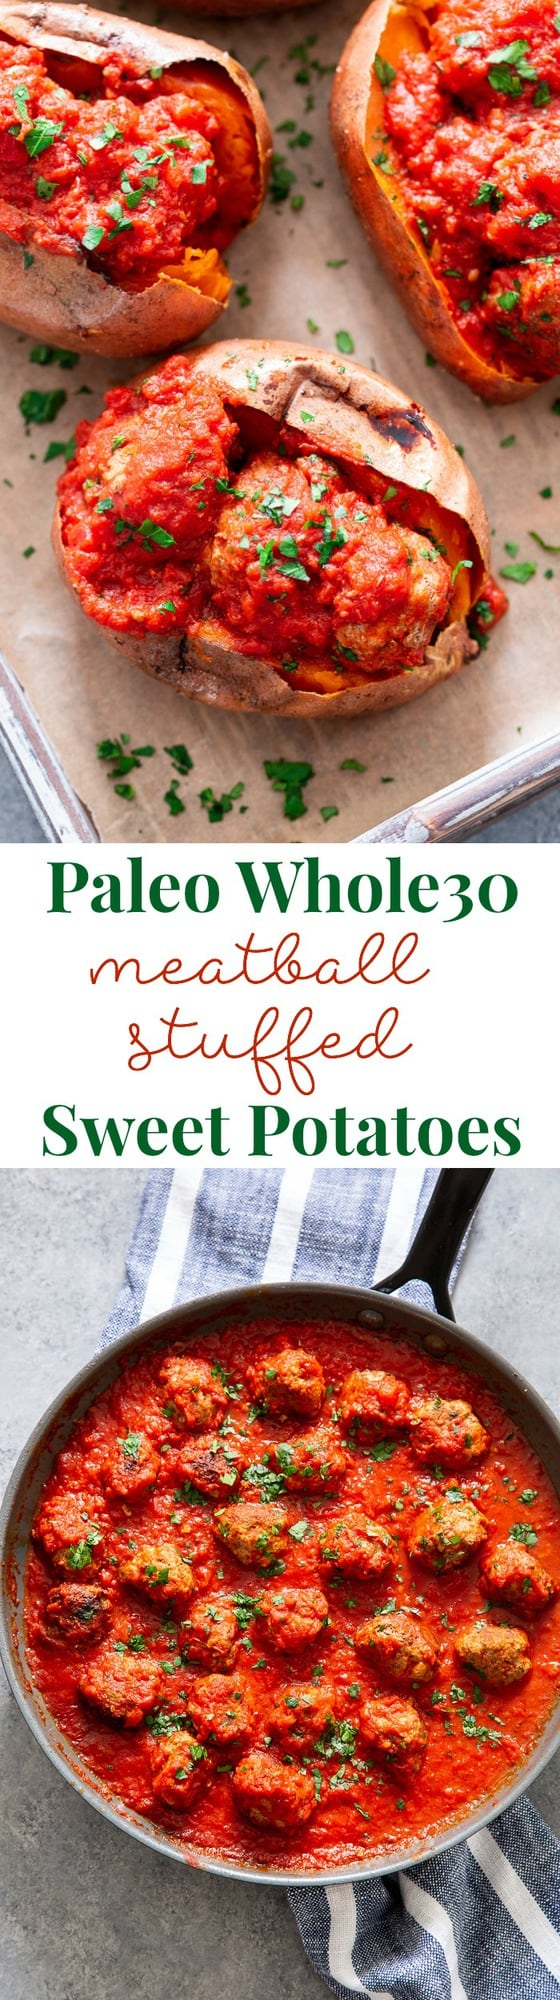 These Italian Meatball Stuffed Sweet Potatoes are flavor packed and easy to make!  Quick and easy pan fried Italian meatballs are simmered in sauce and served over perfectly baked sweet potatoes for a paleo and Whole30 meal that's filing and addicting!